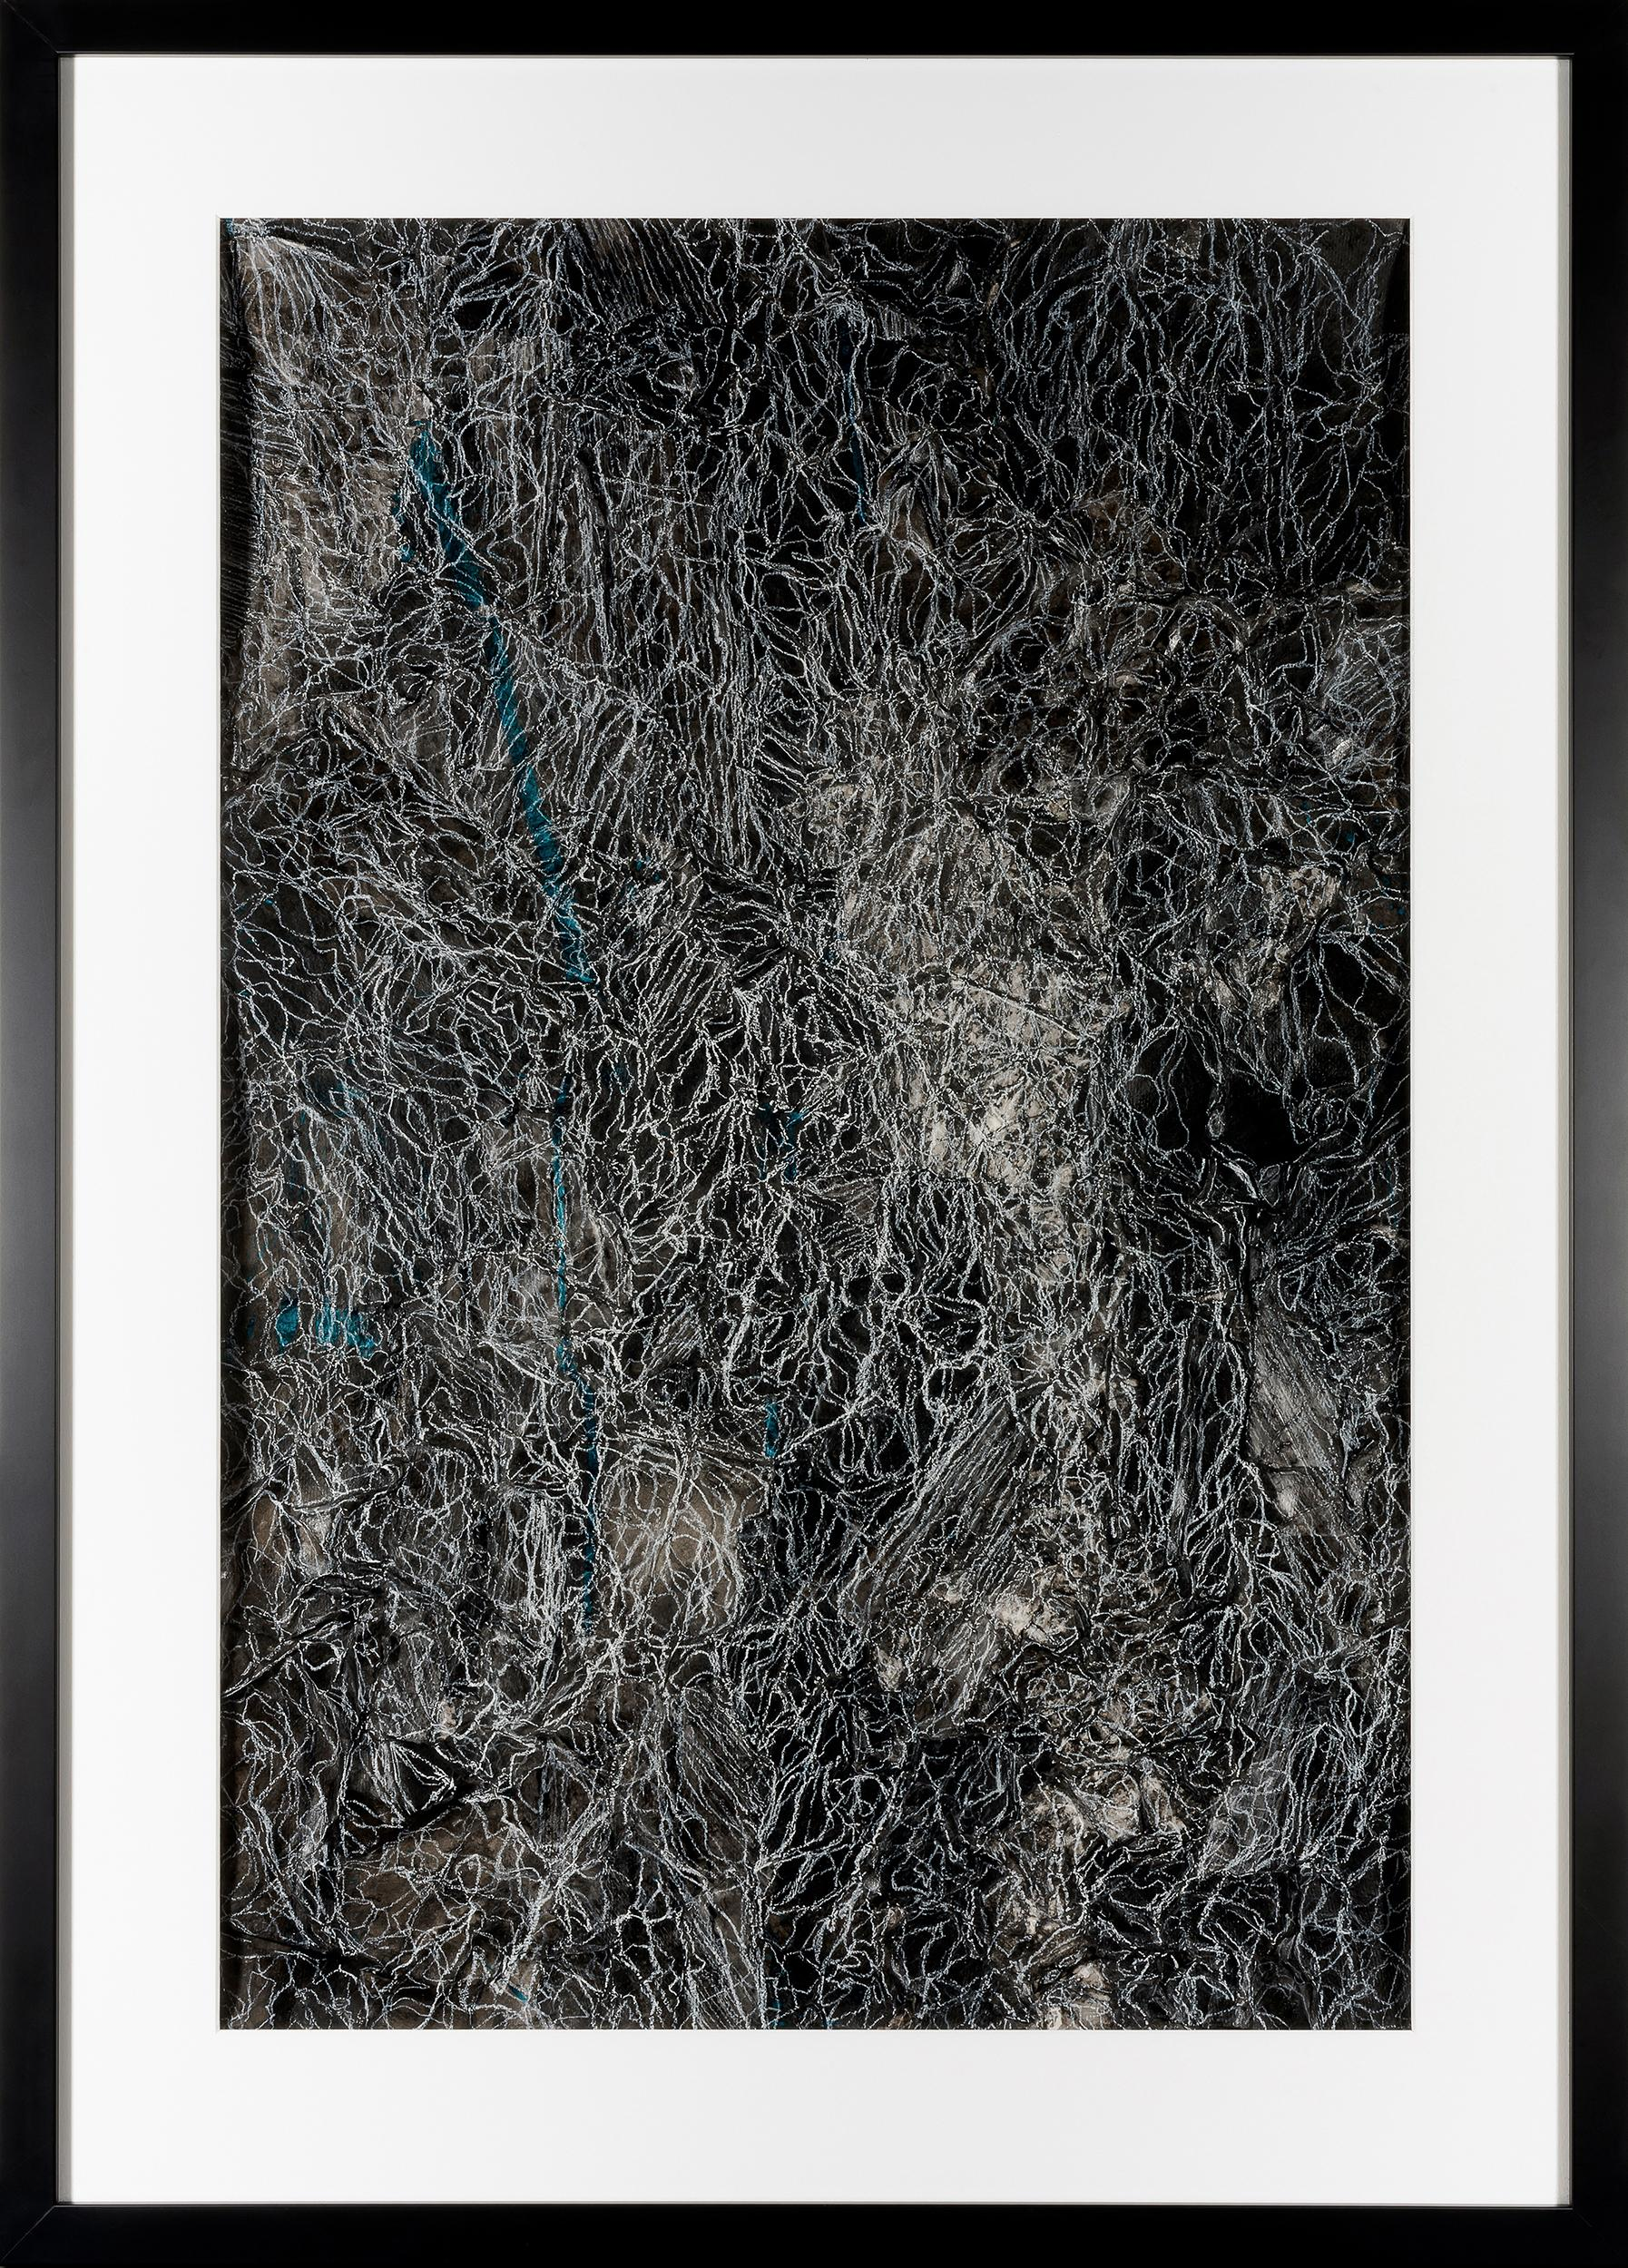 Fragments of Memory II - Contemporary Abstract Illustration